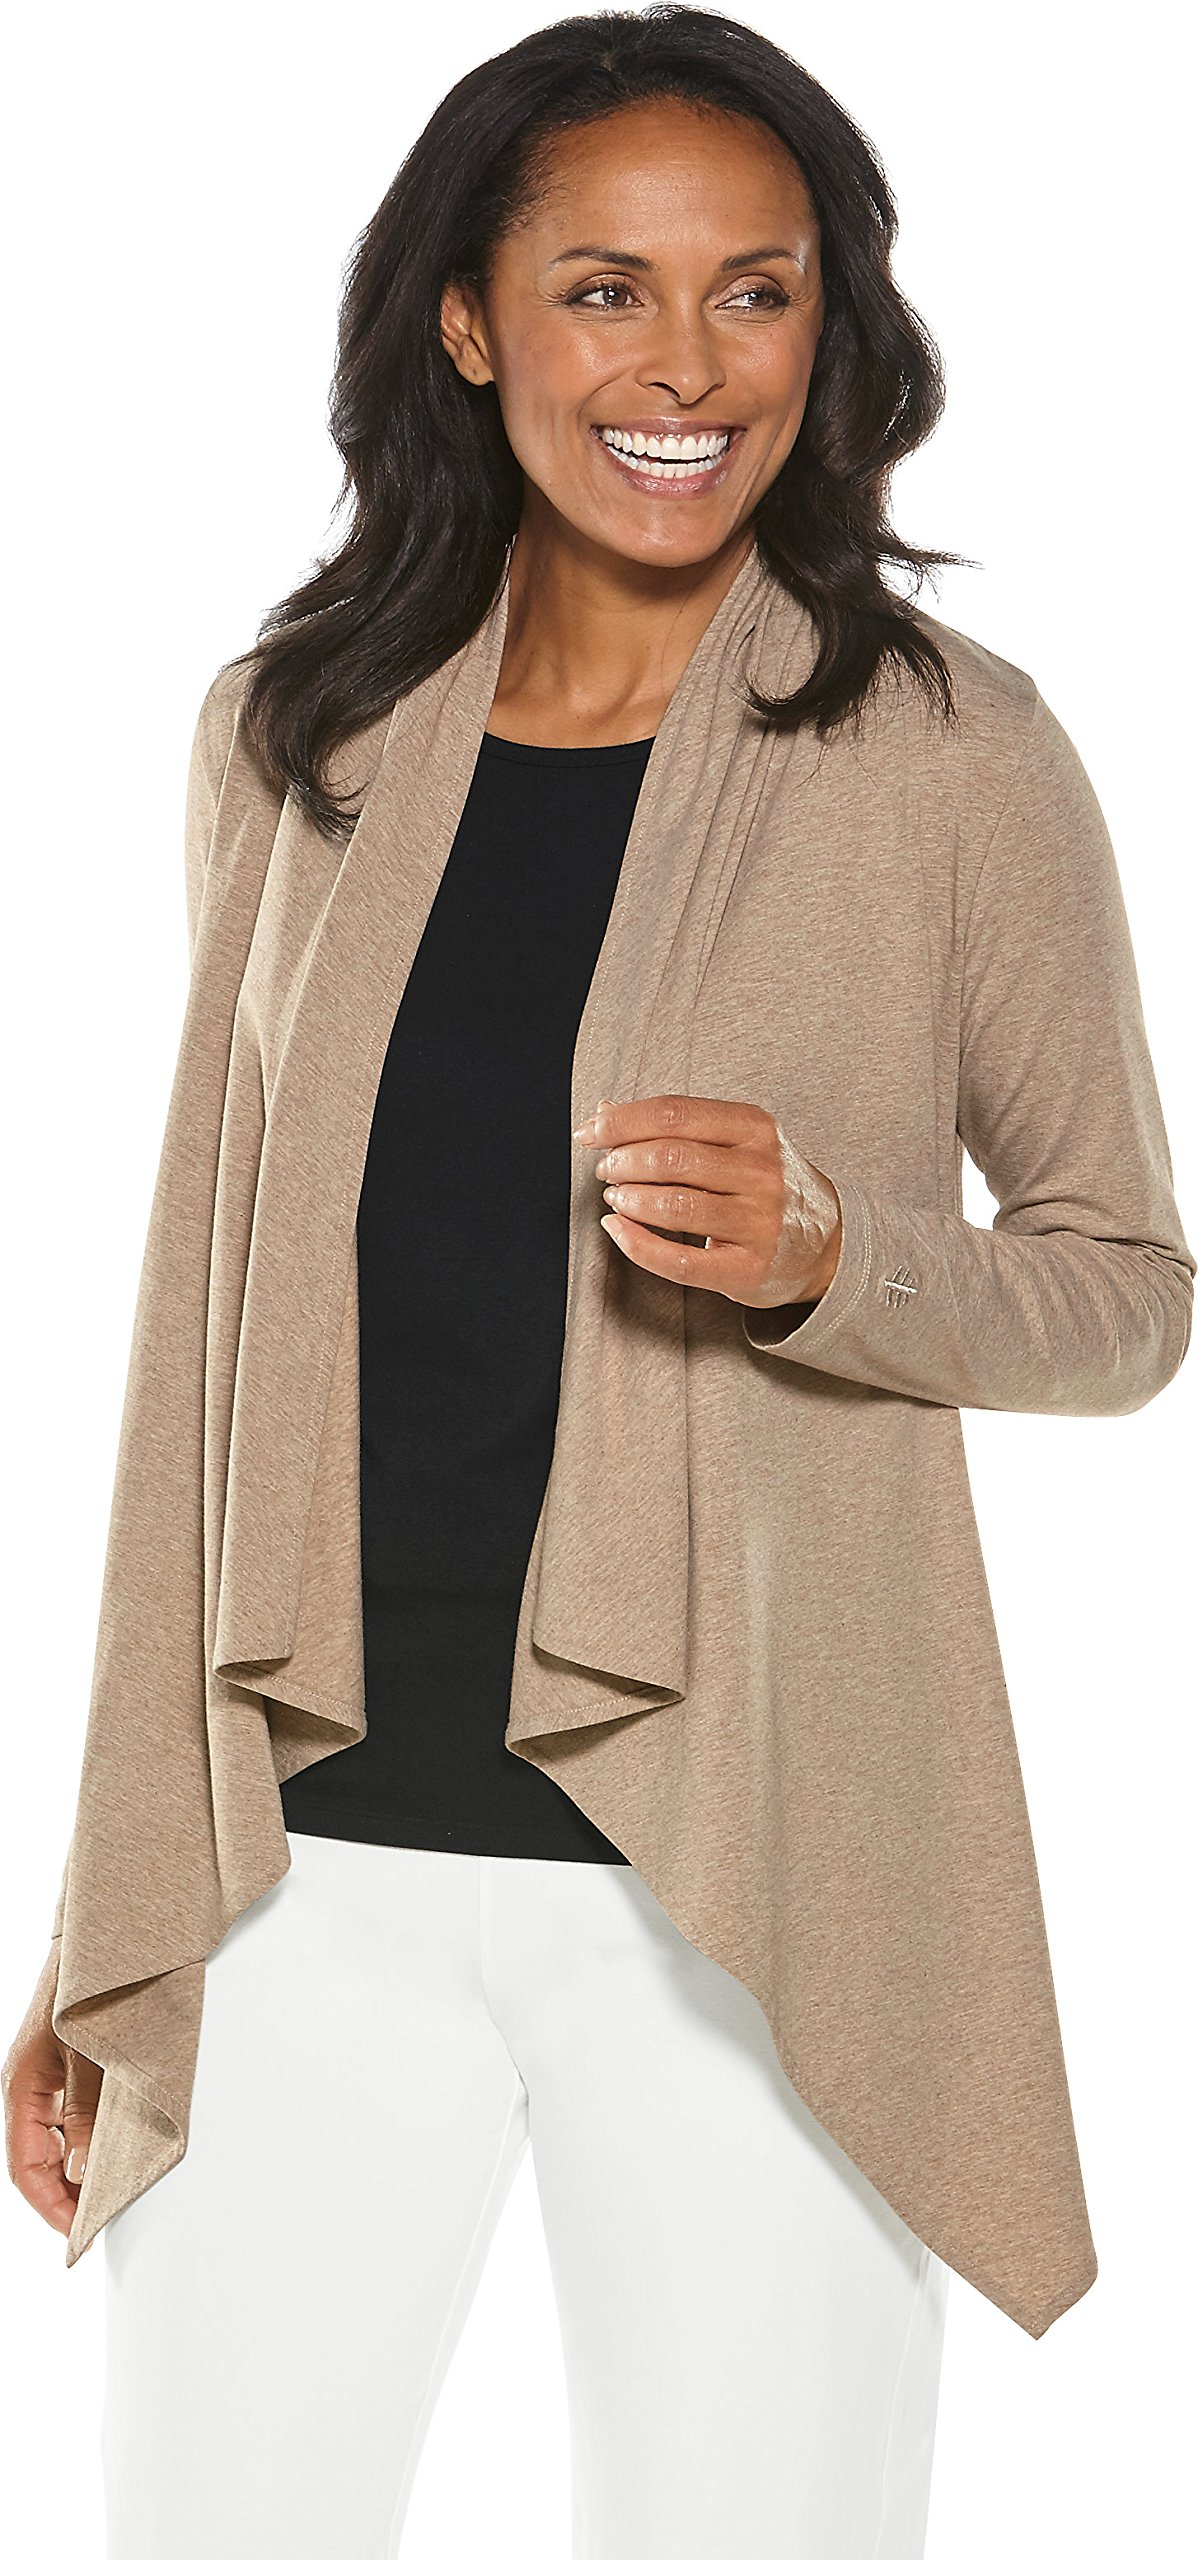 Coolibar UPF 50+ Women's Sun Wrap - Sun Protective (Medium- Dark Taupe Heather)